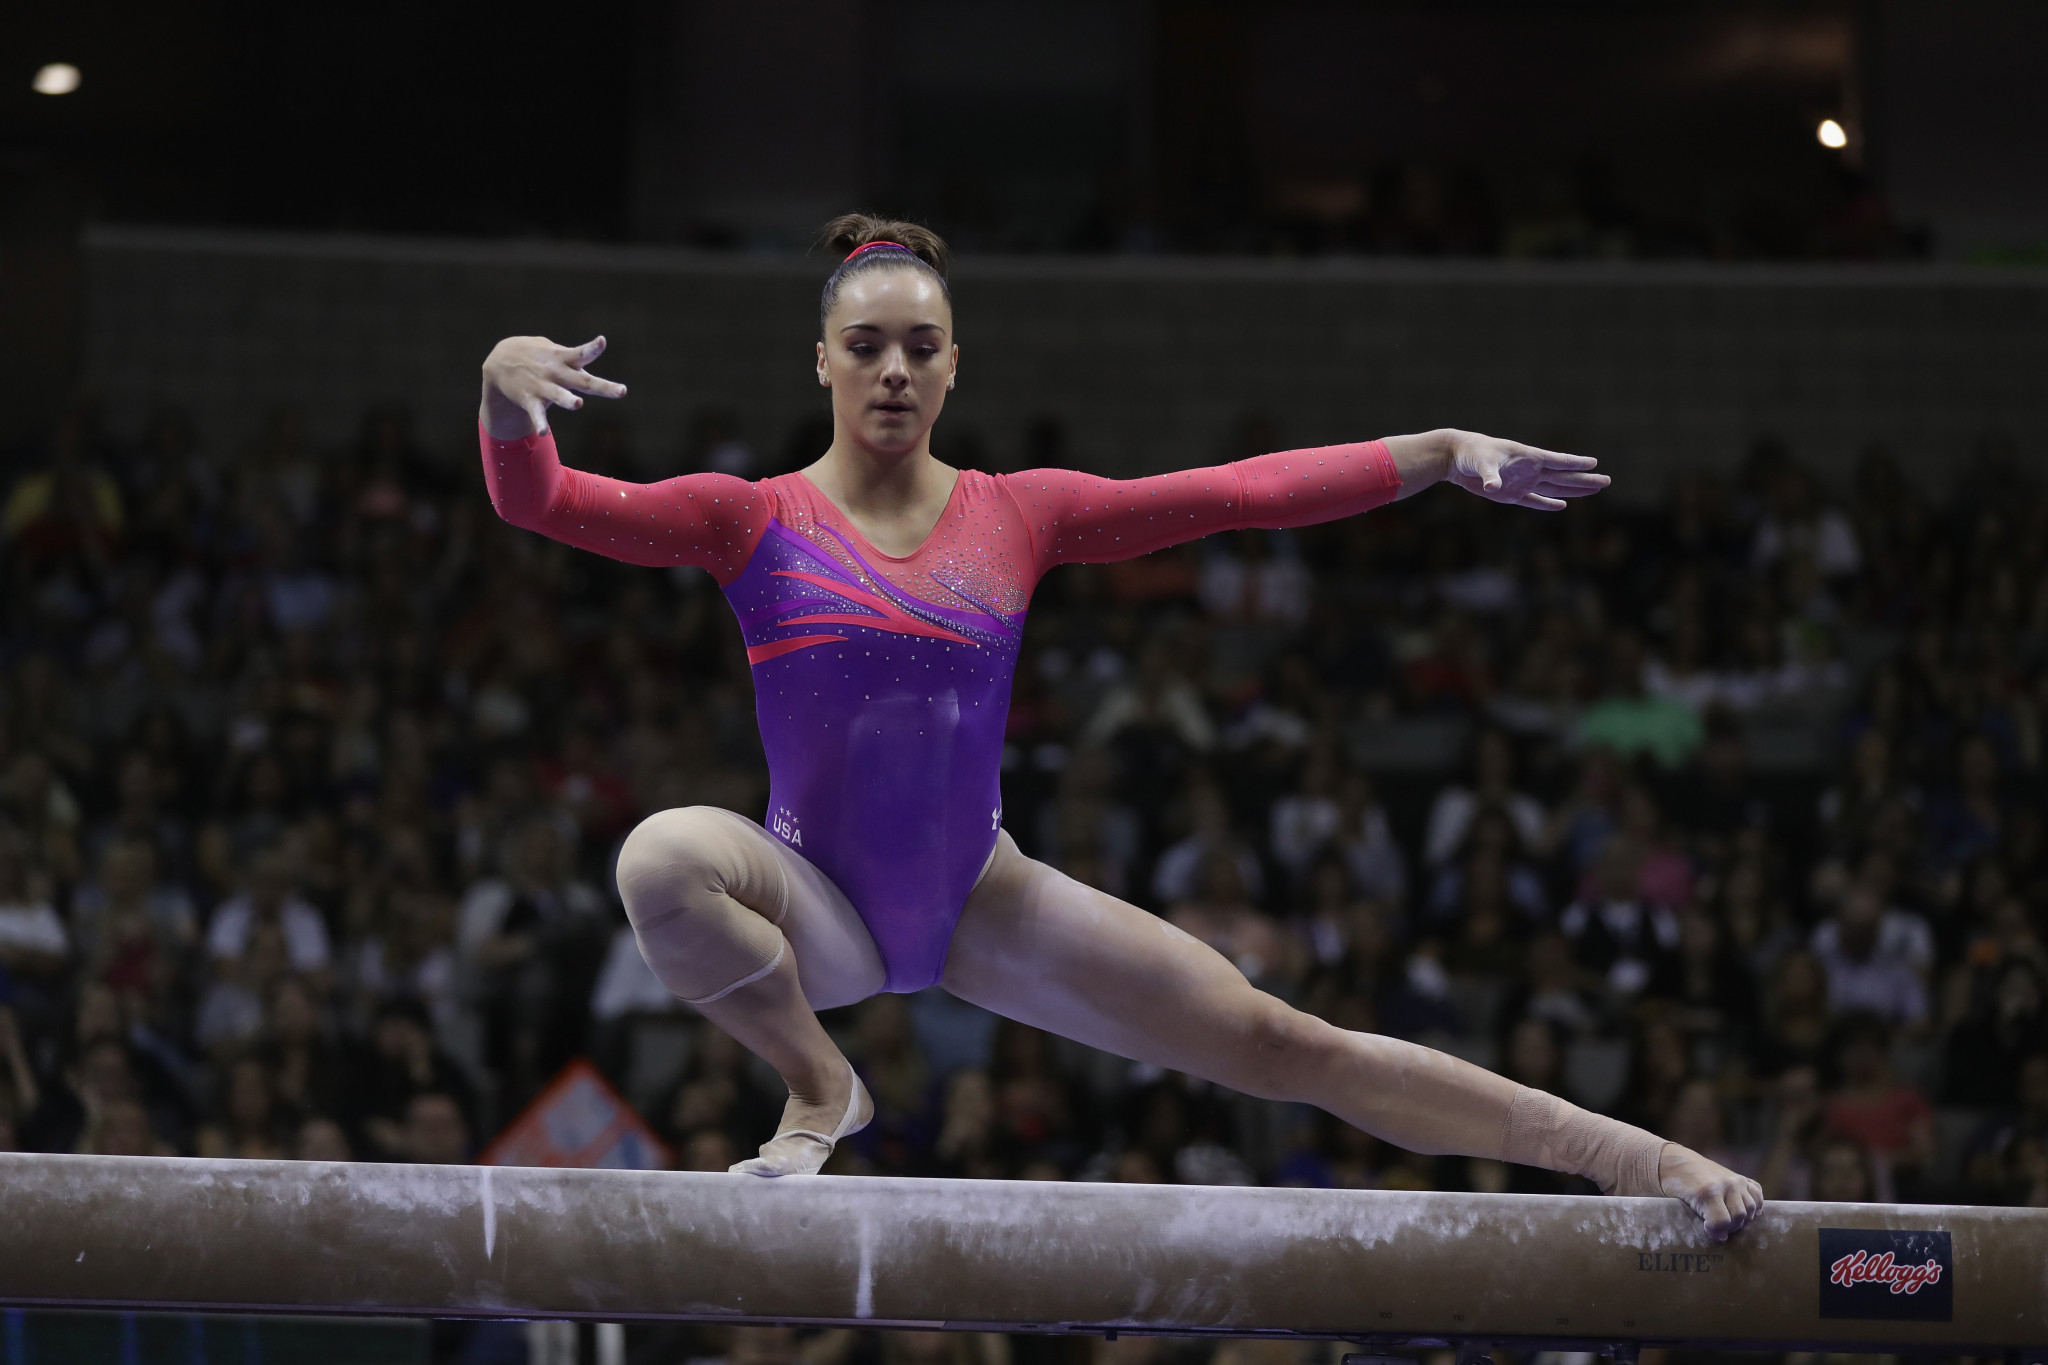 First-hand accounts from gymnasts such as Maggie Nichols helped Athlete A tell the important story of widespread sexual abuse in USA Gymnastics ©Getty Images